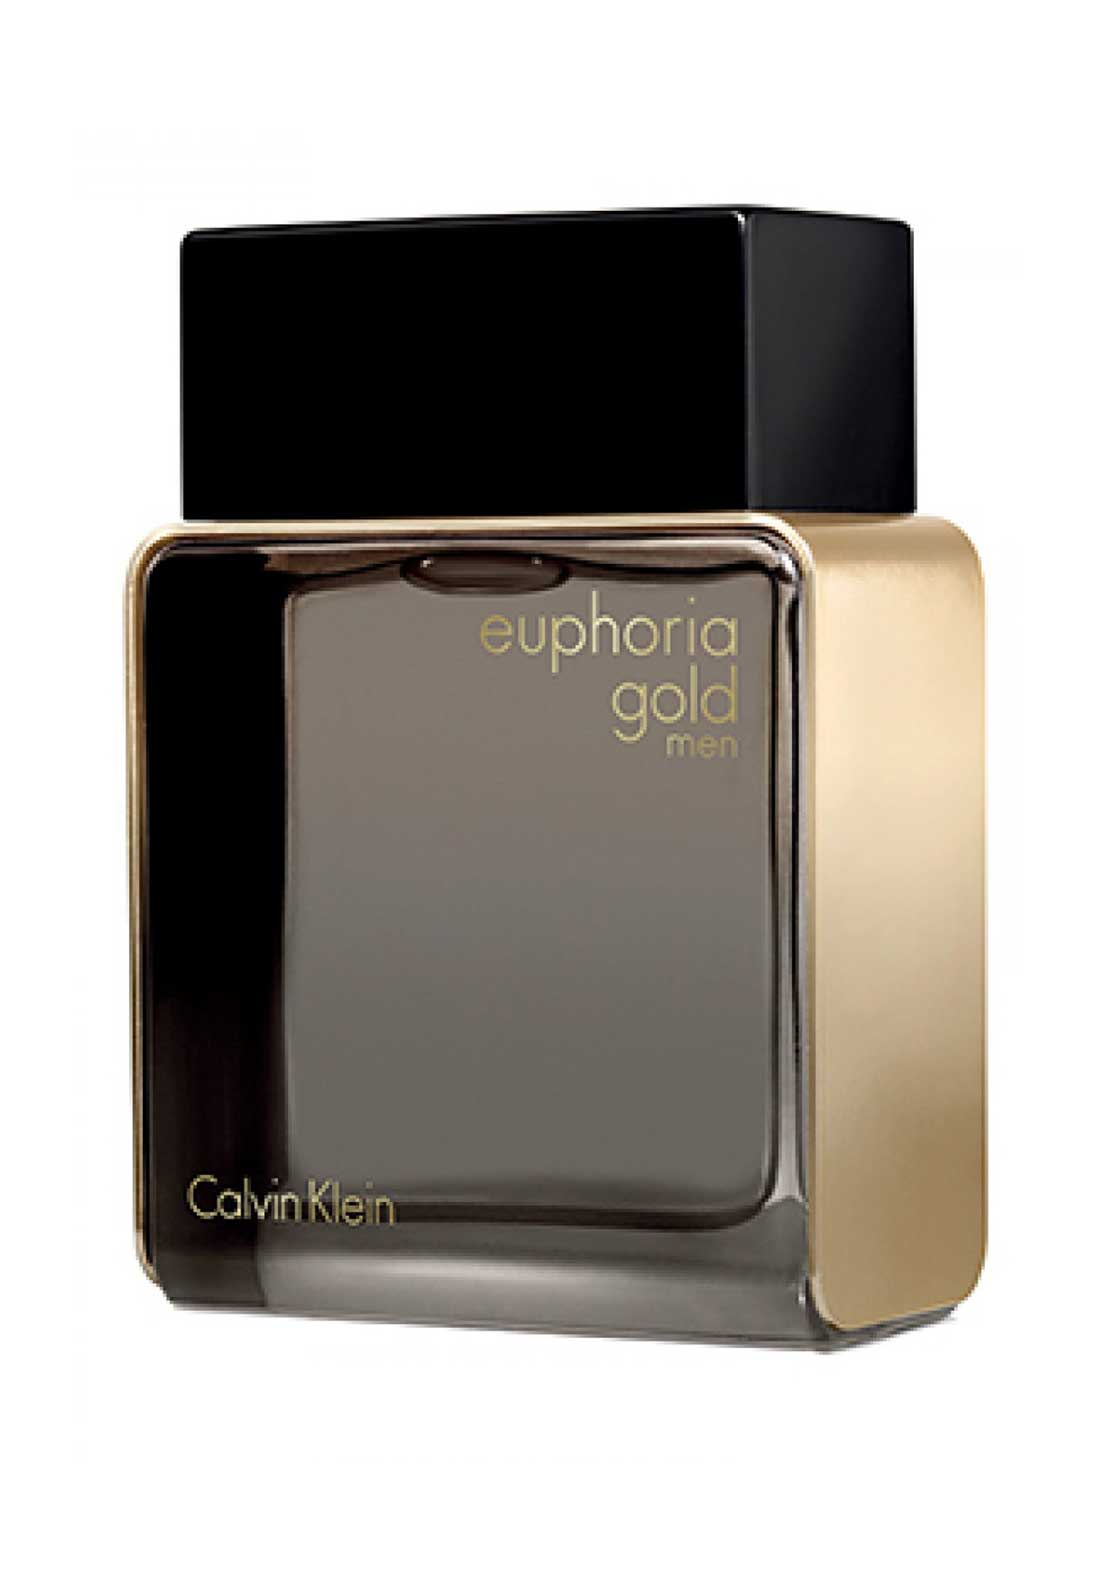 Calvin Klein Euphoria Gold Men Limited Addition Eau de Toilette Spray, 100ml